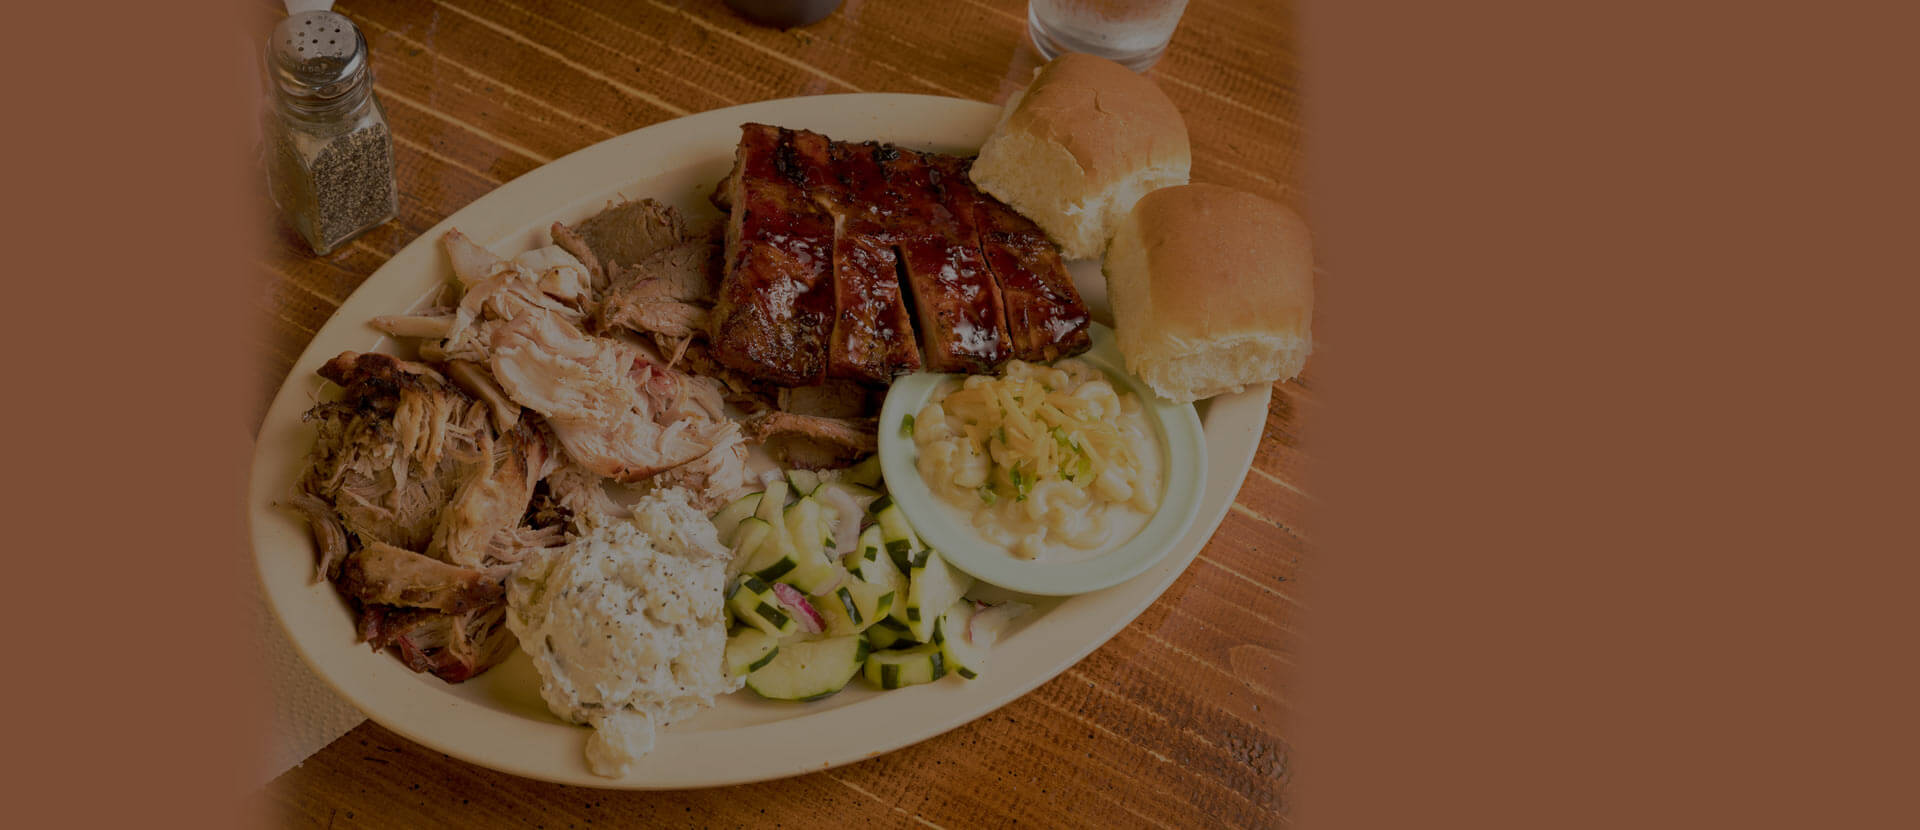 Whole Hog Cafe World Champion Barbecue New Mexico